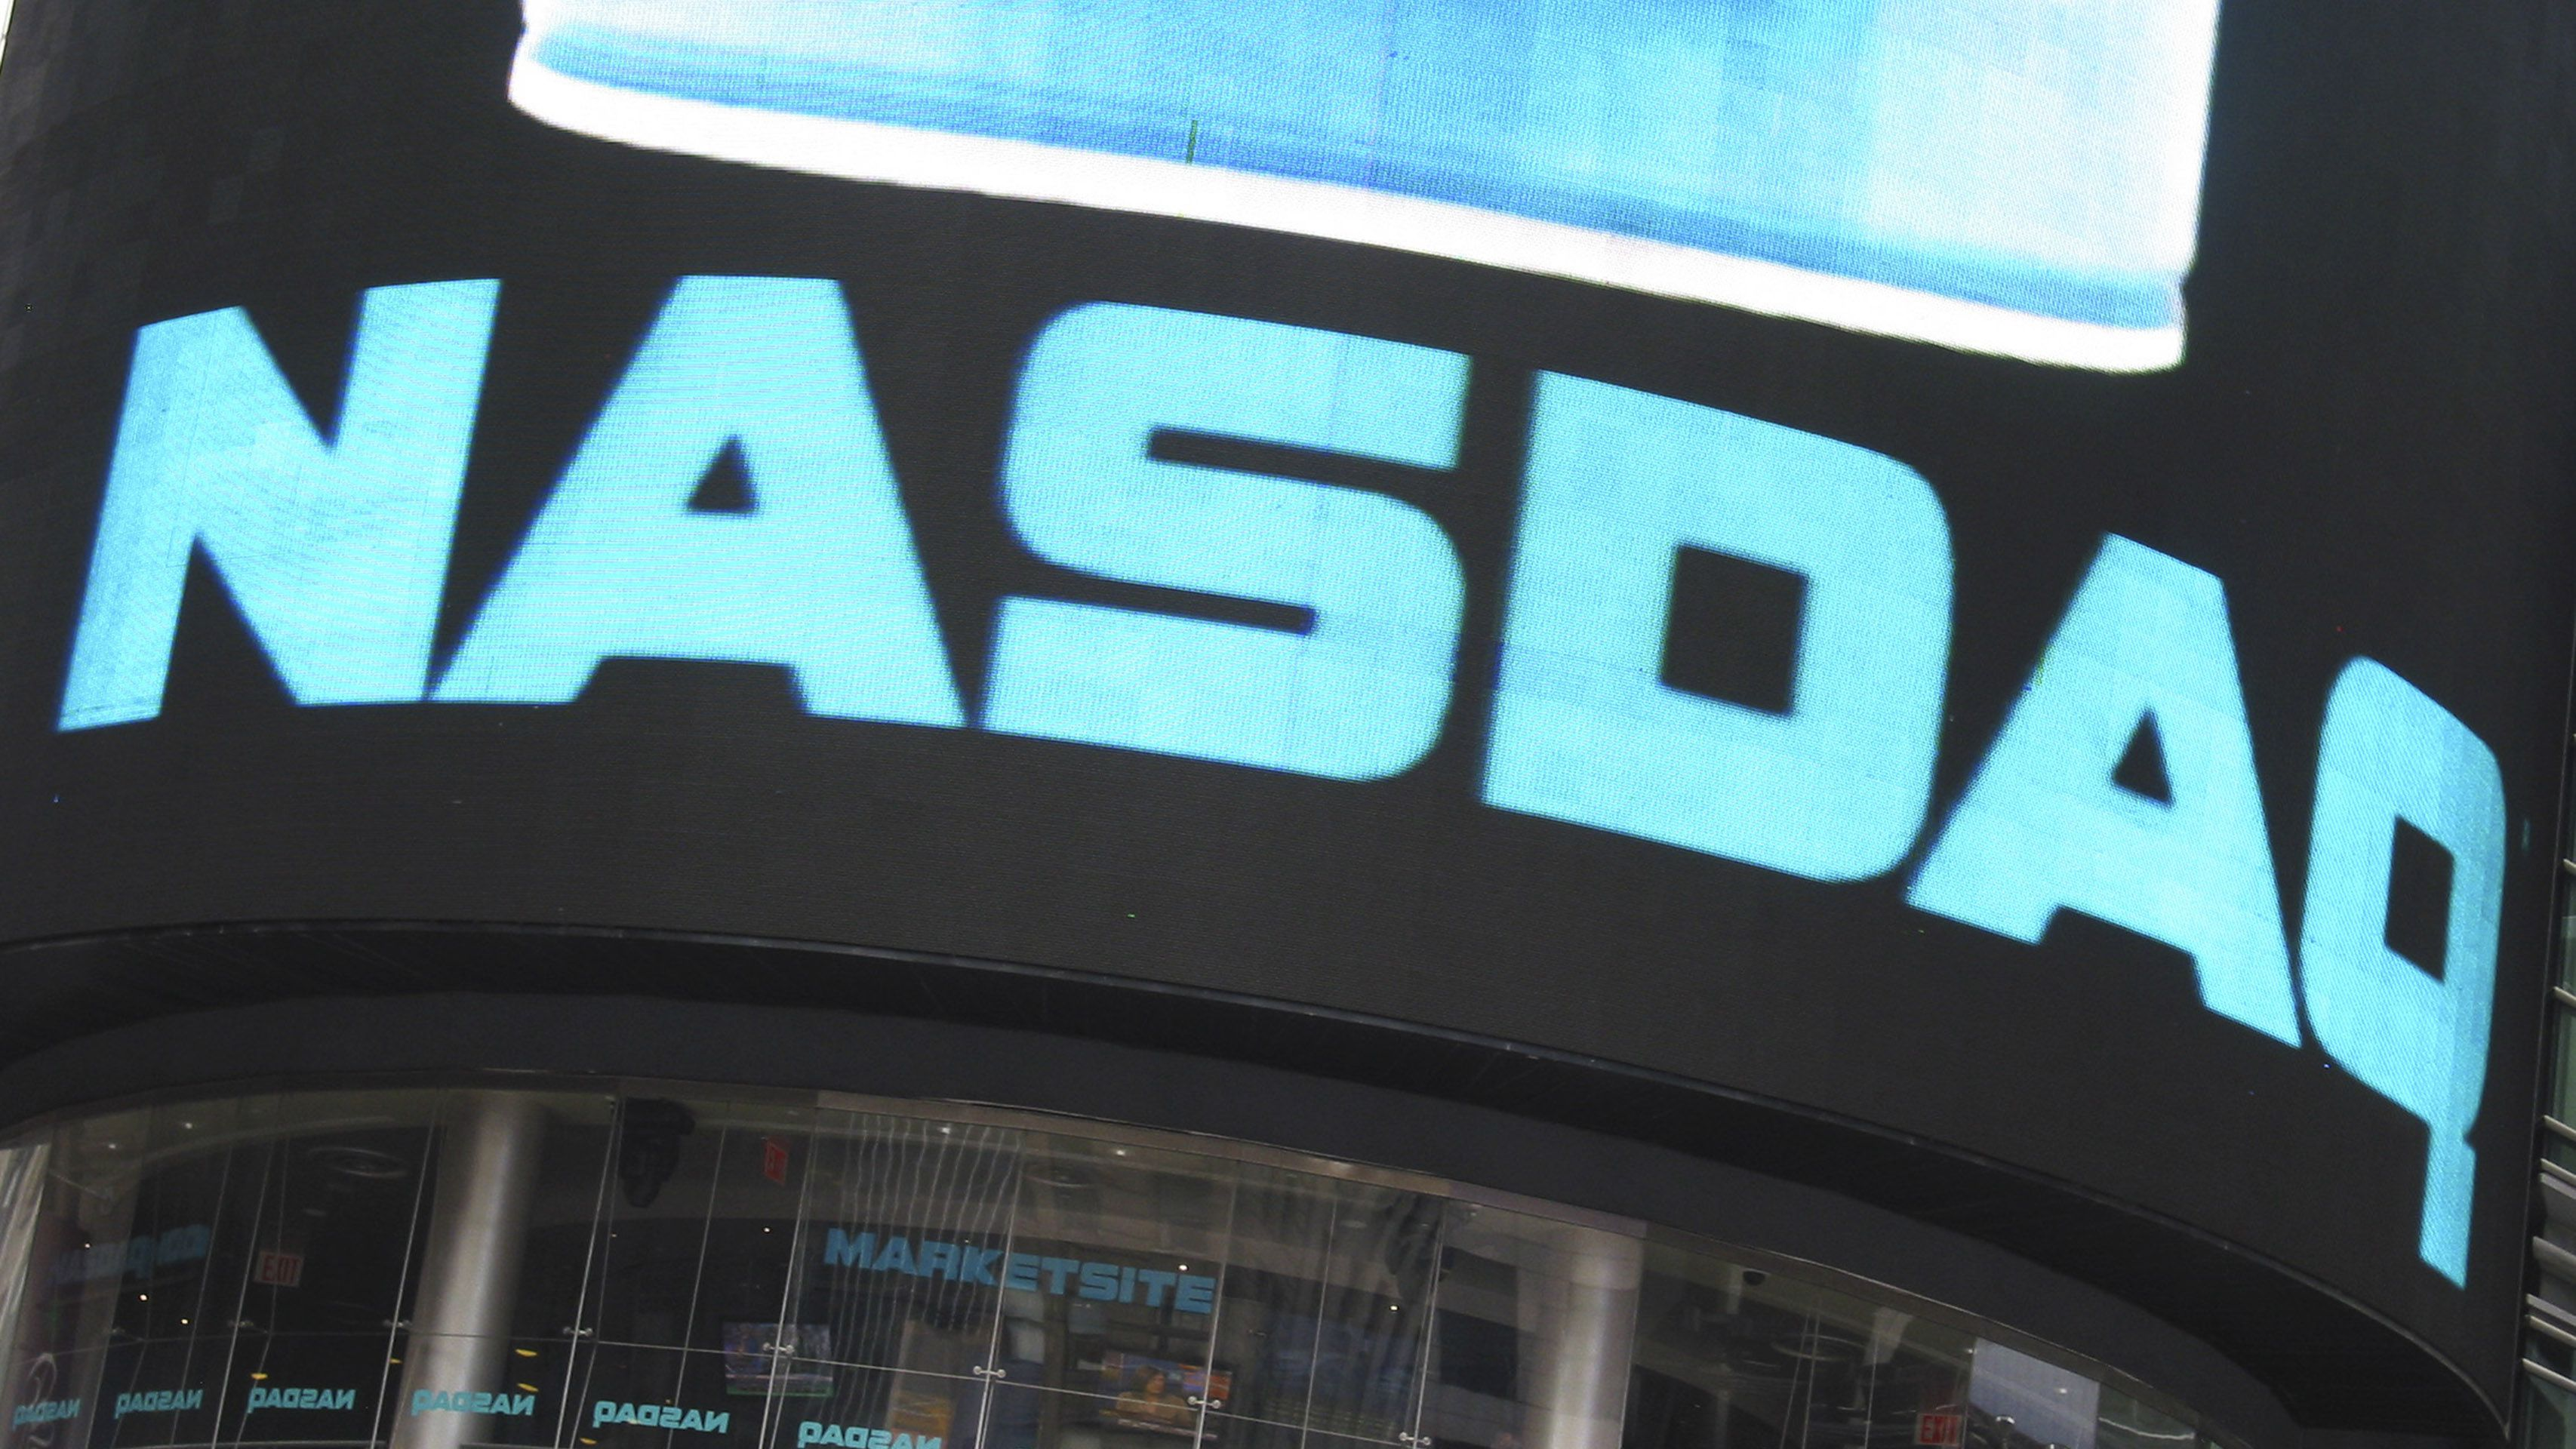 Nasdaq: What It Stands For, Crashes, Bubbles, Impact